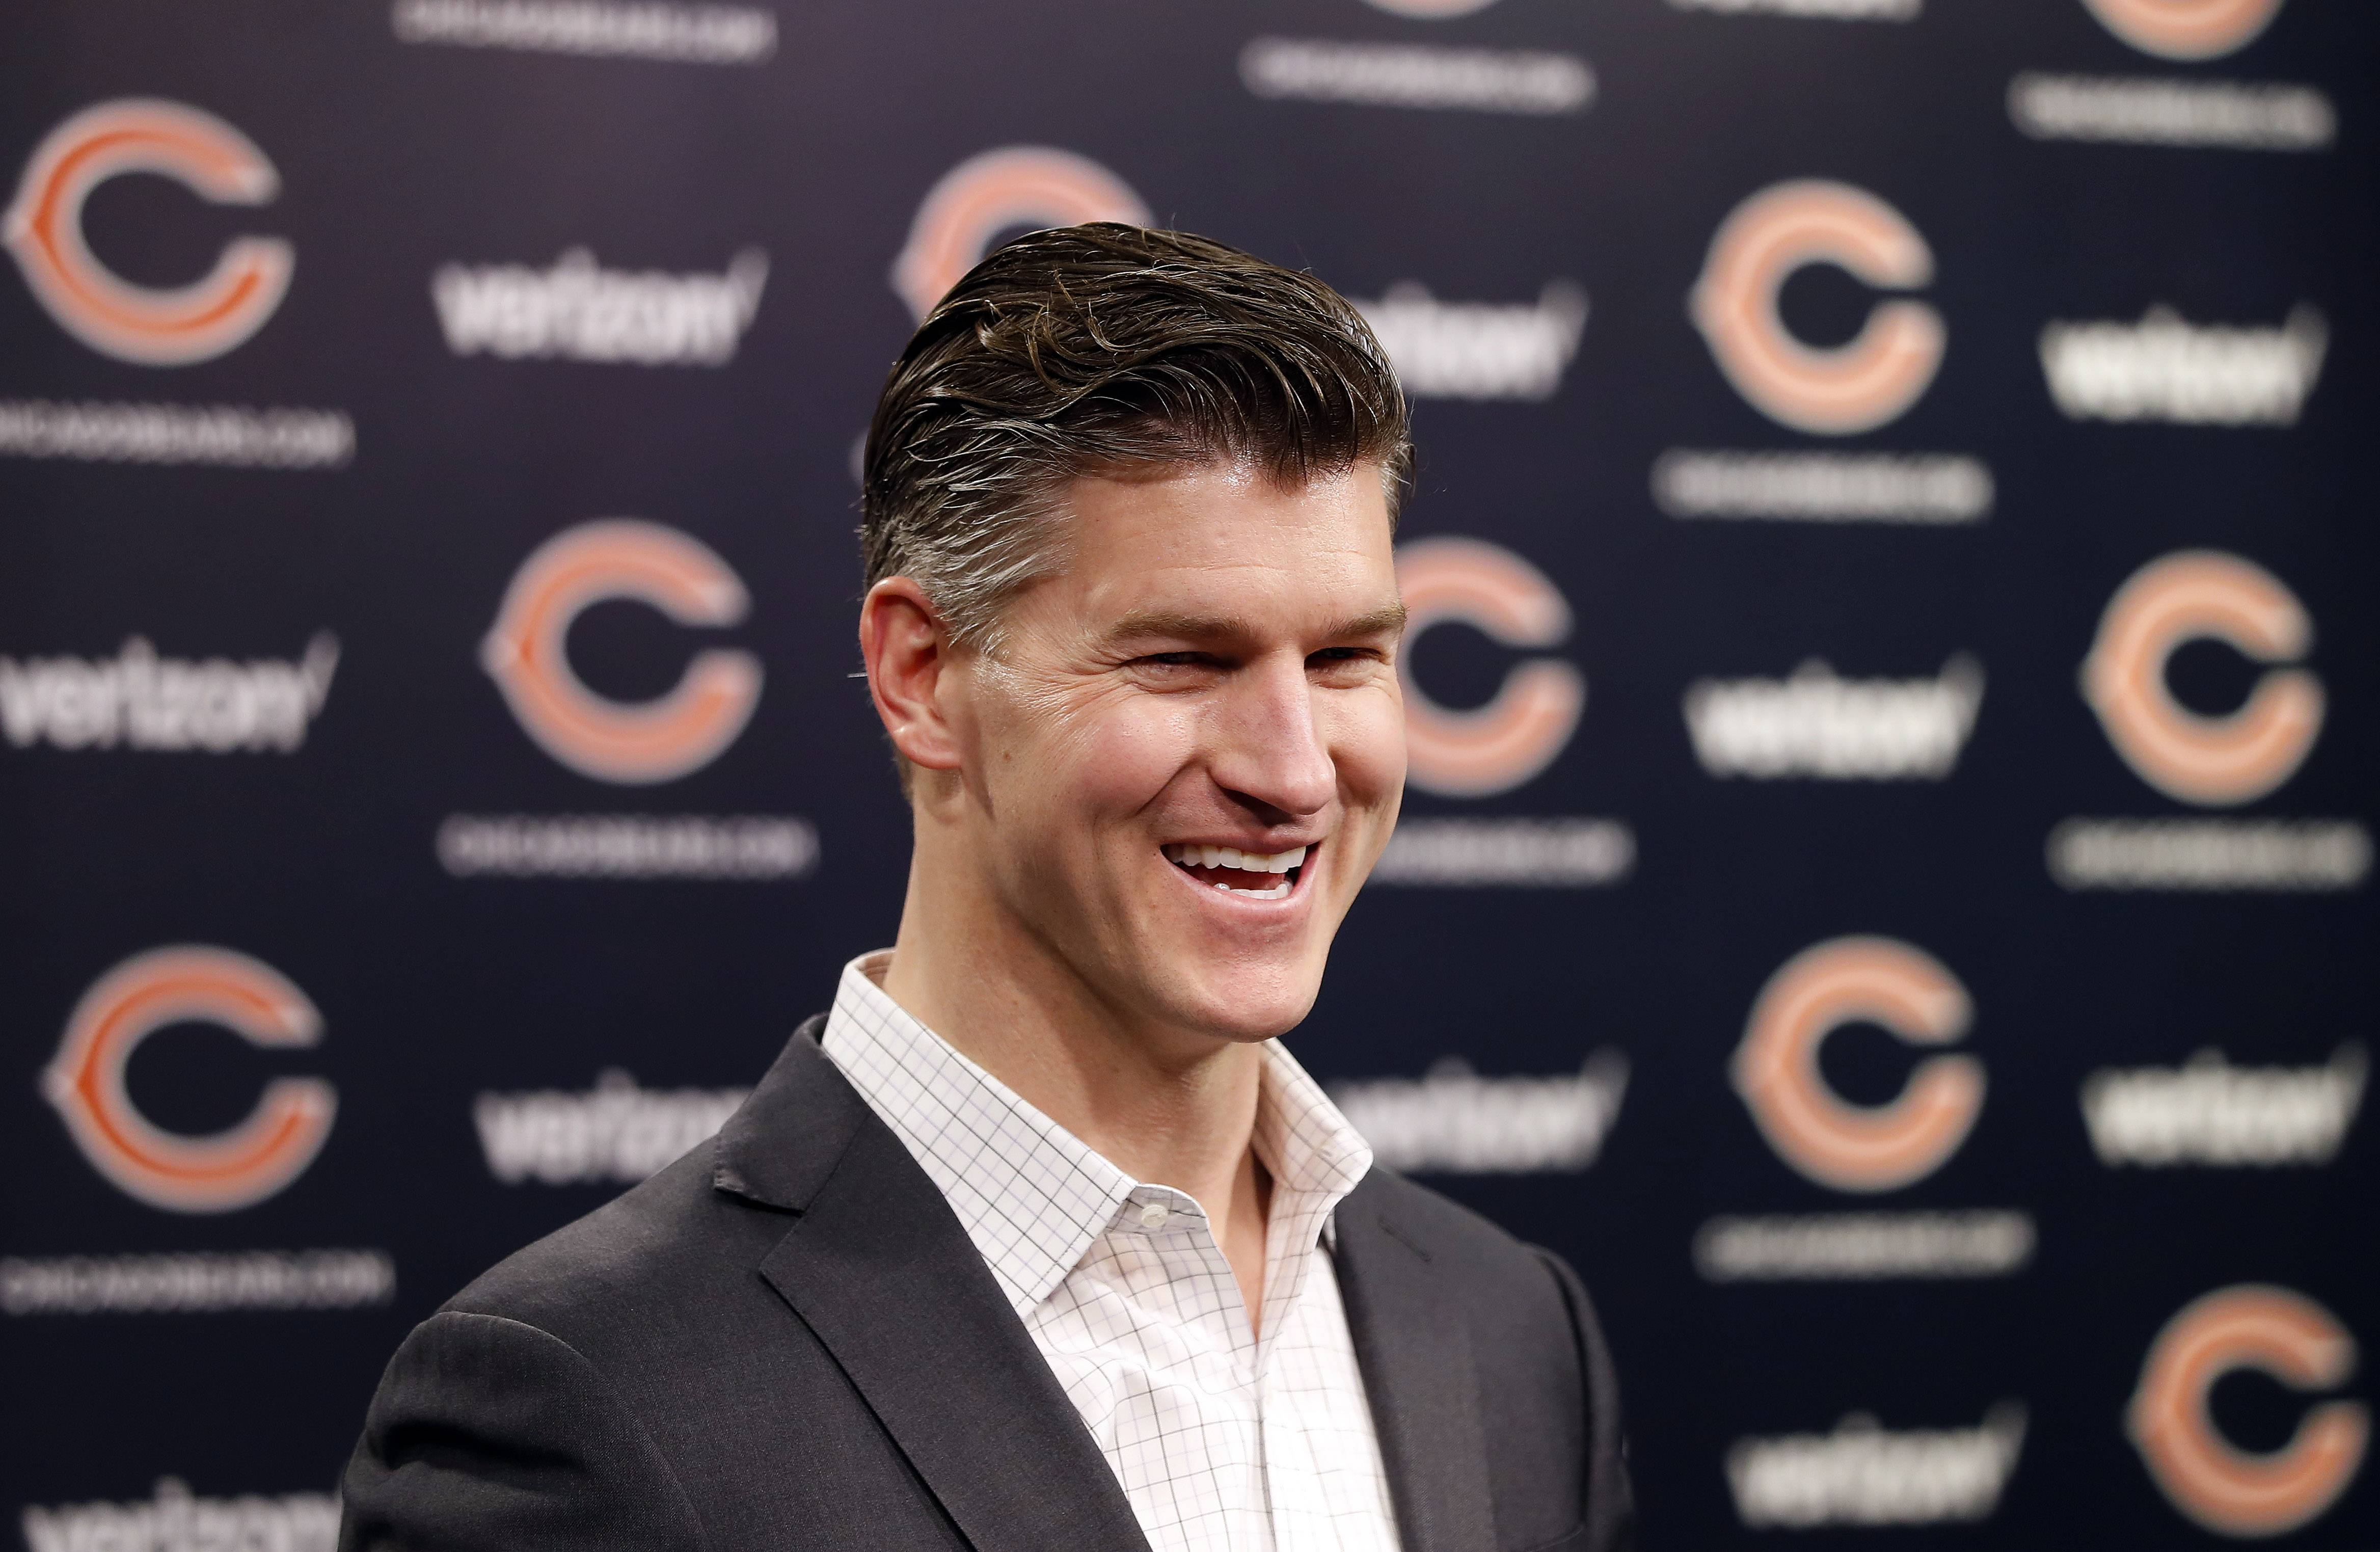 Bears general manager Ryan Pace will have to deal with the fact that for the first time in a long time the Bears are very short on salary cap space, and without picks in the first two rounds of this year's draft and the first round next year.